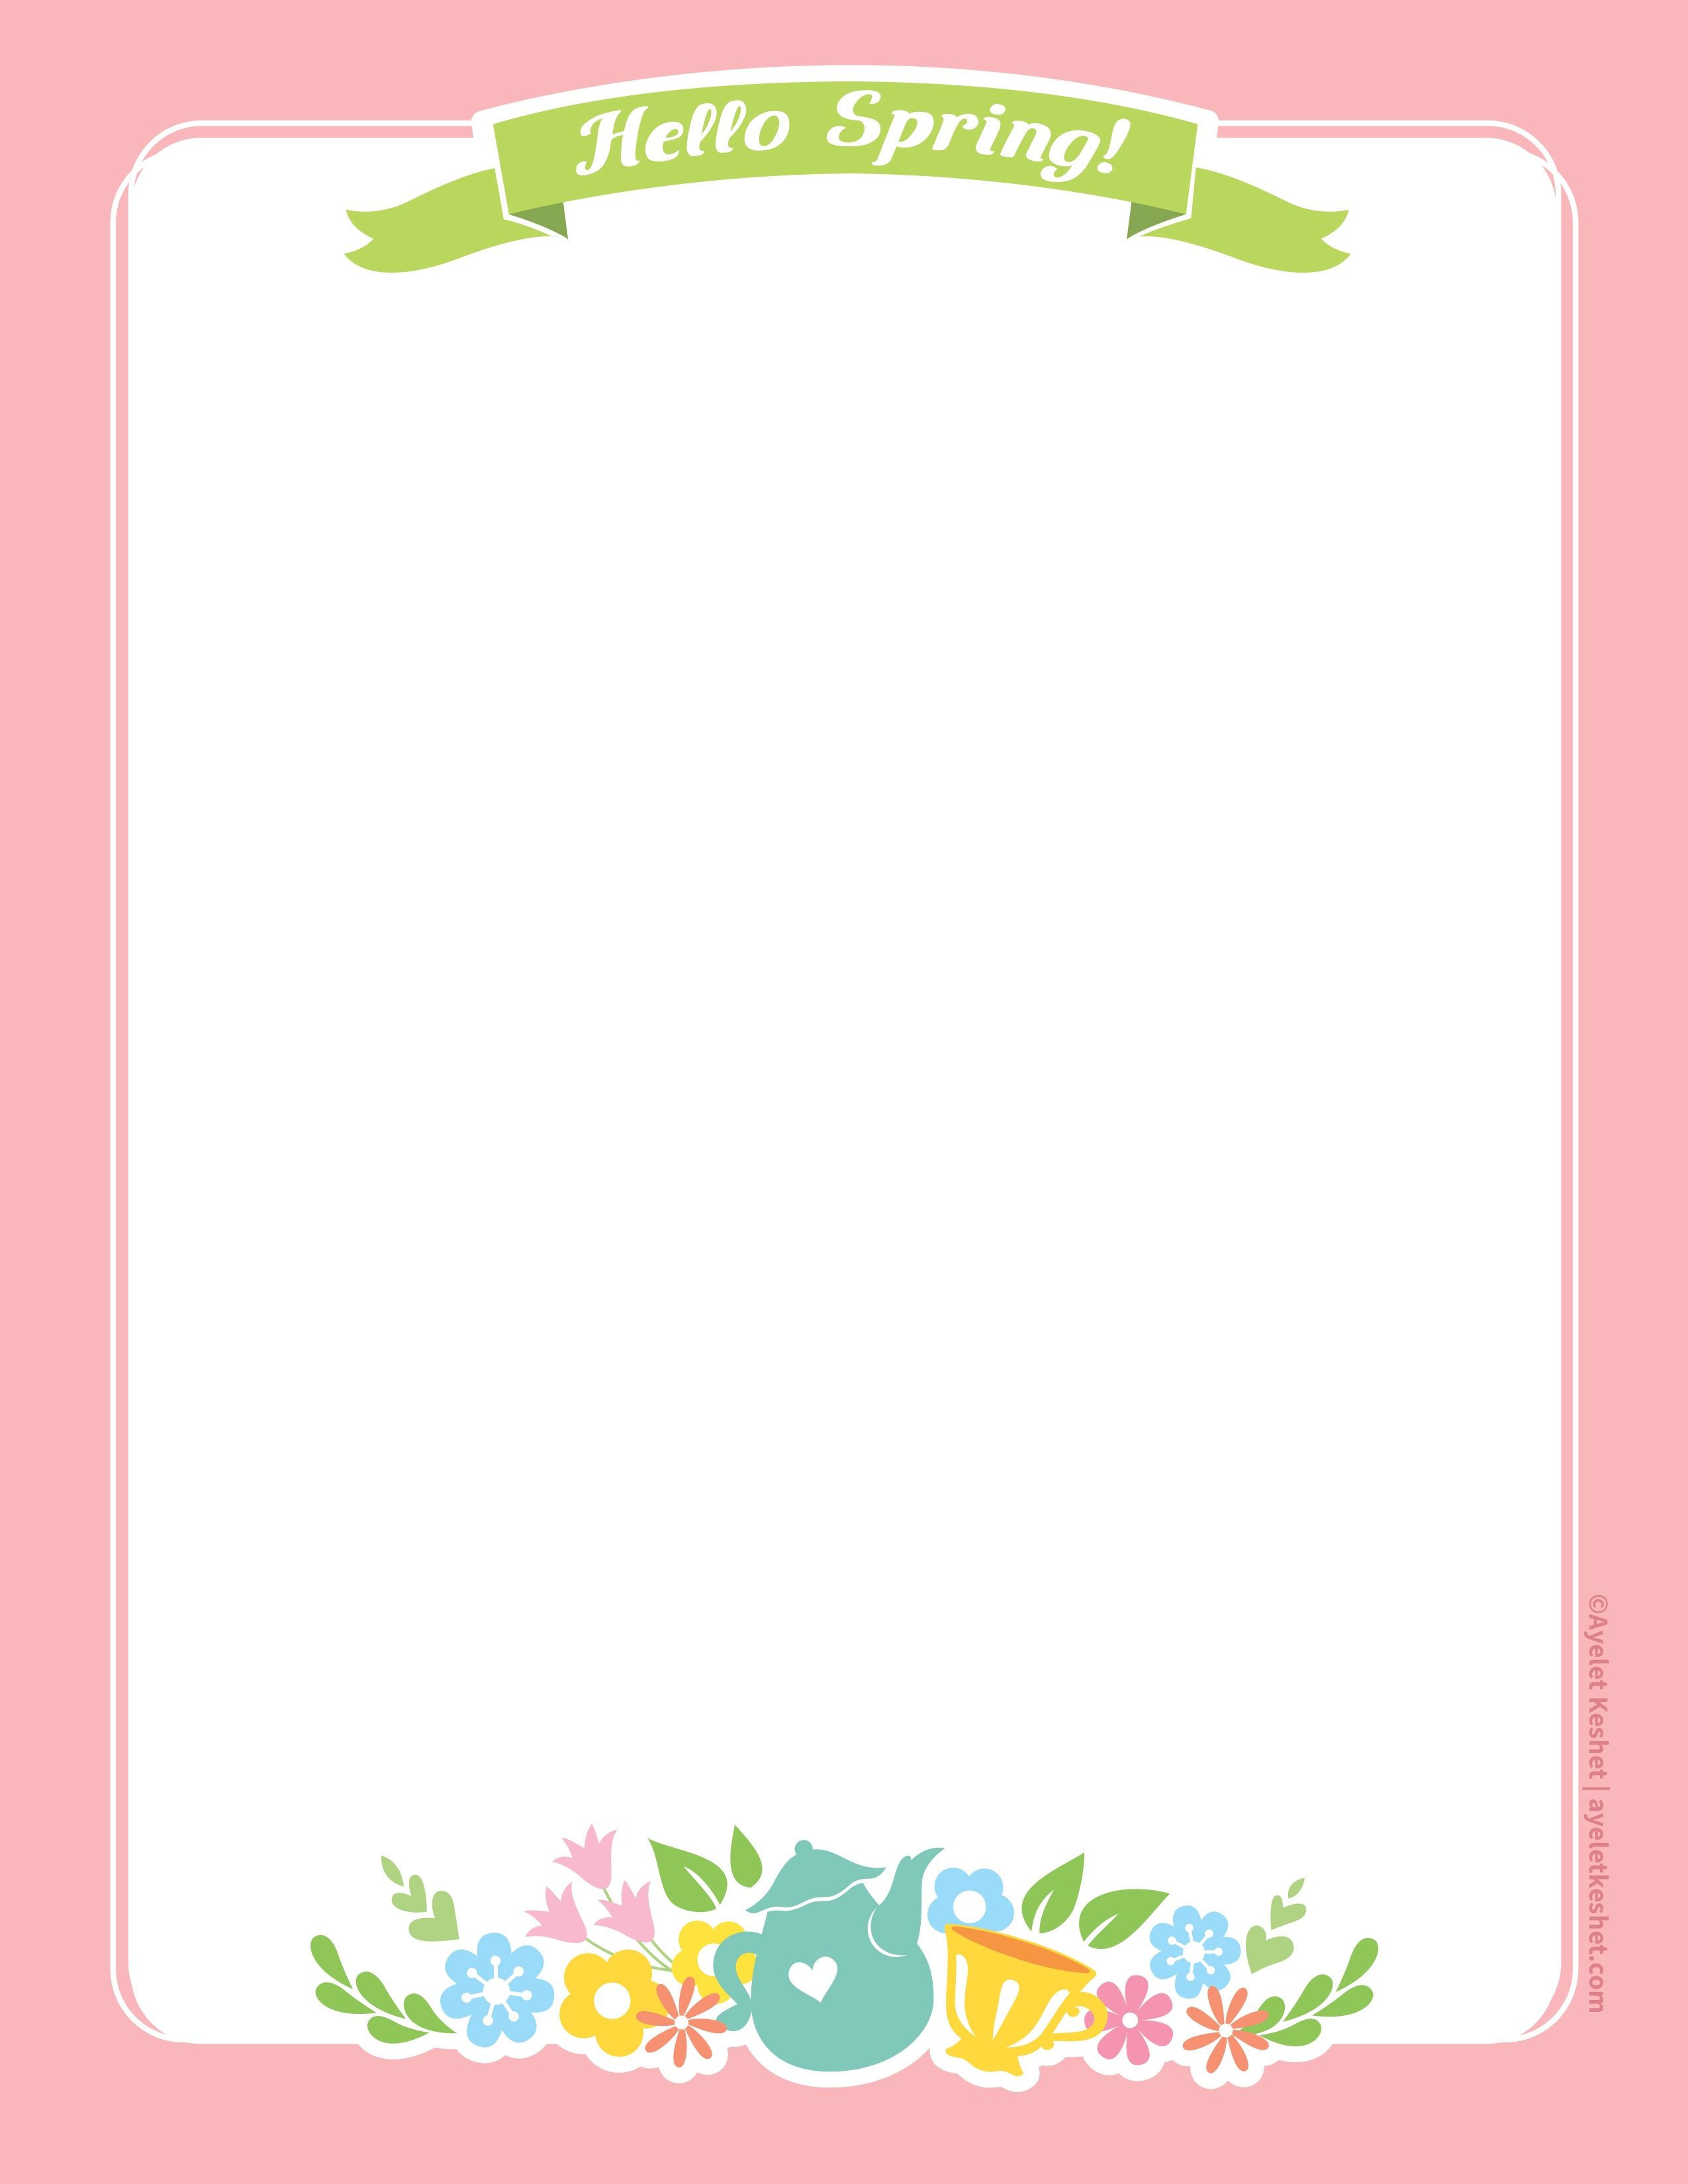 Lovely Free Printable Stationery Paper For Spring - Ayelet Keshet - Free Printable Stationery Paper